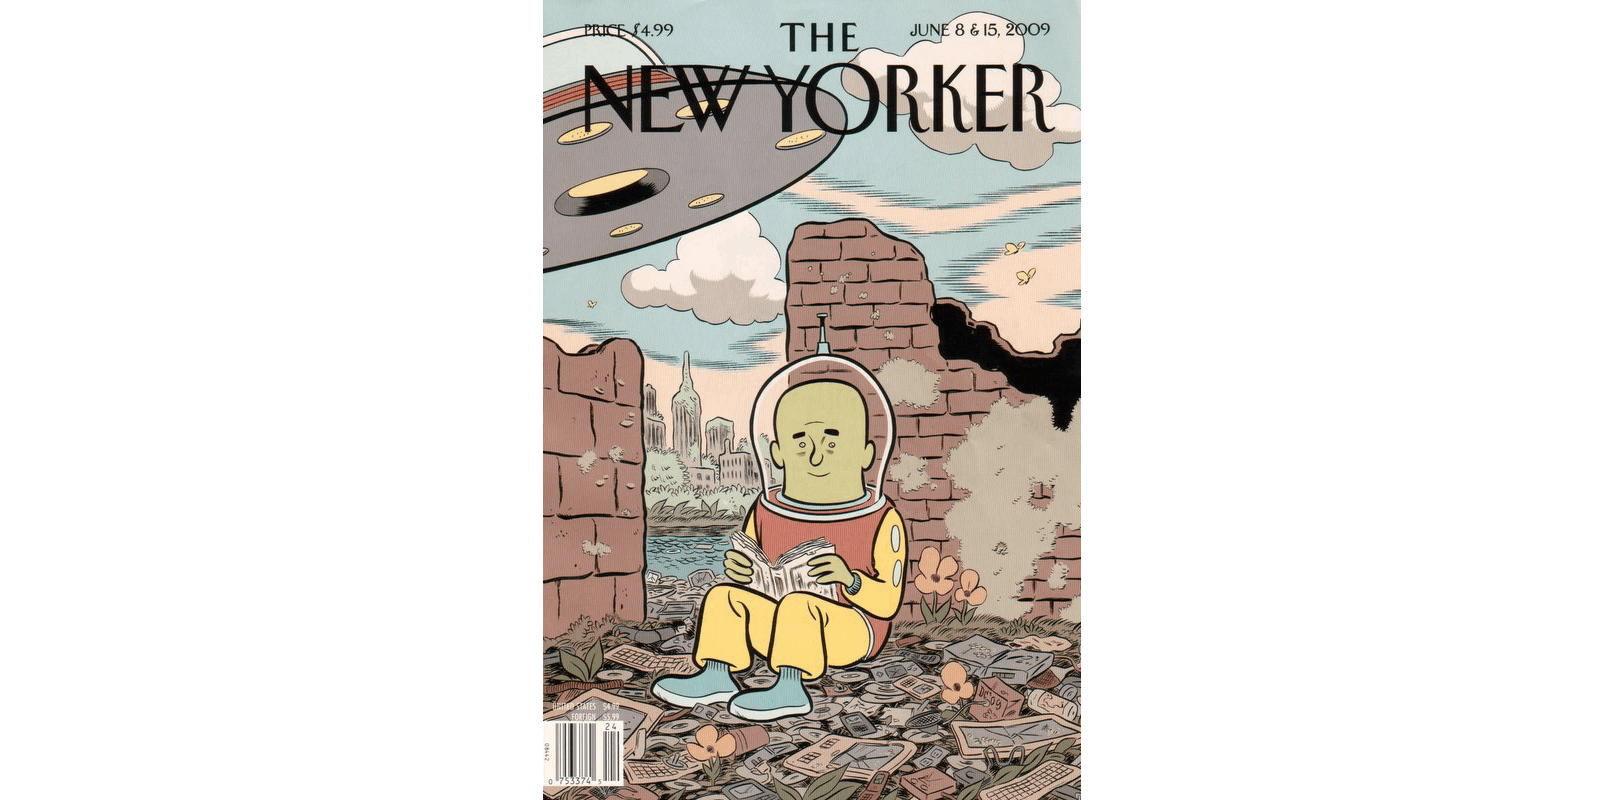 The cover of The New Yorker, June 2009